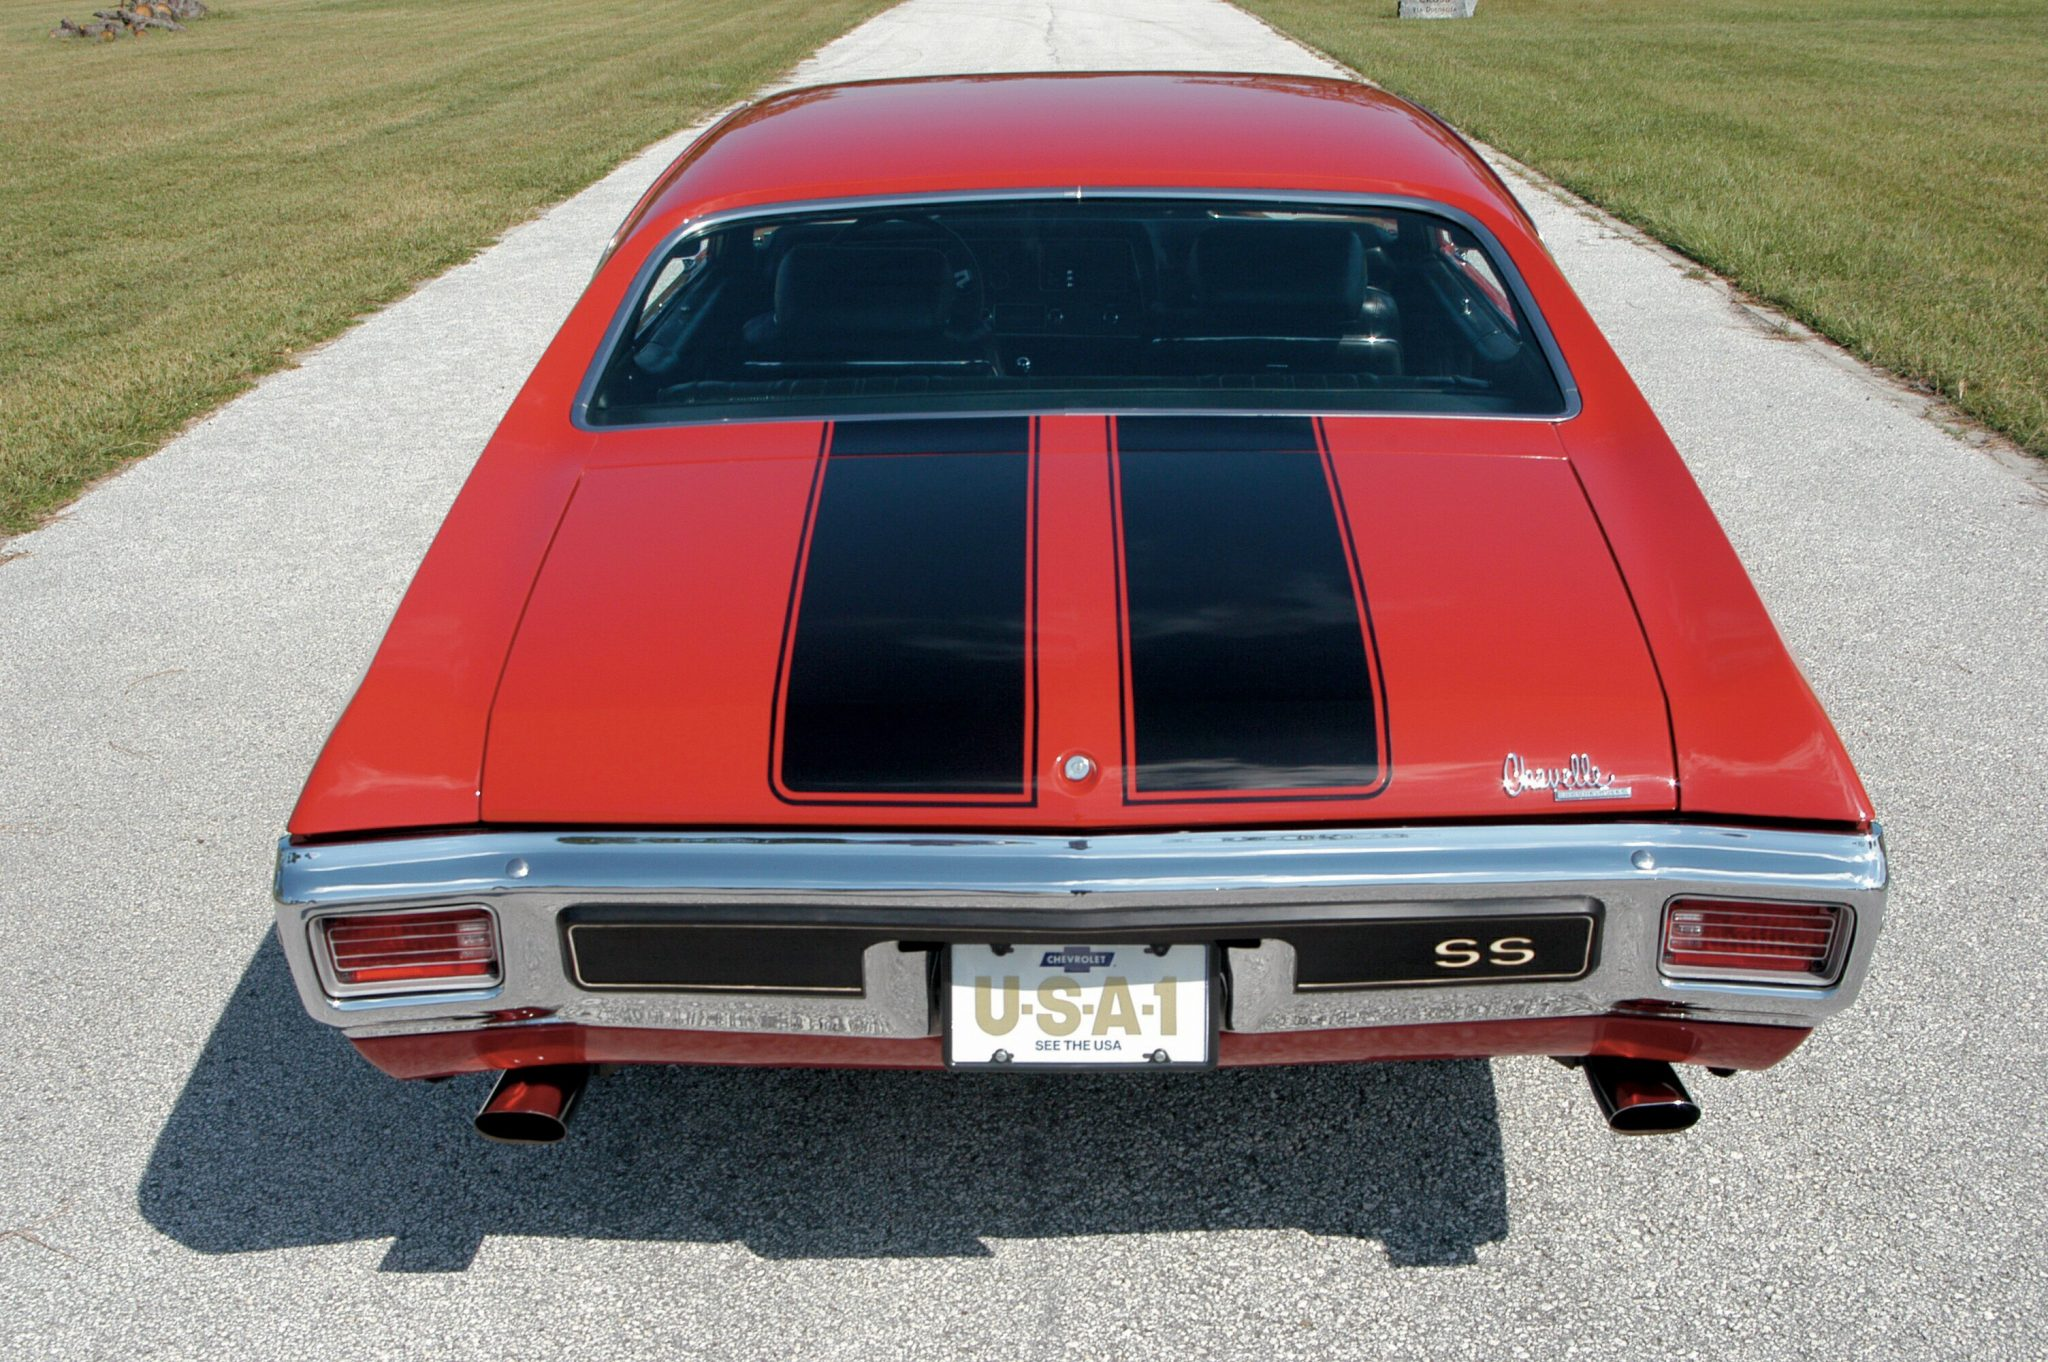 The Ultimate Muscle Car – The 1970 LS6 Chevelle Was